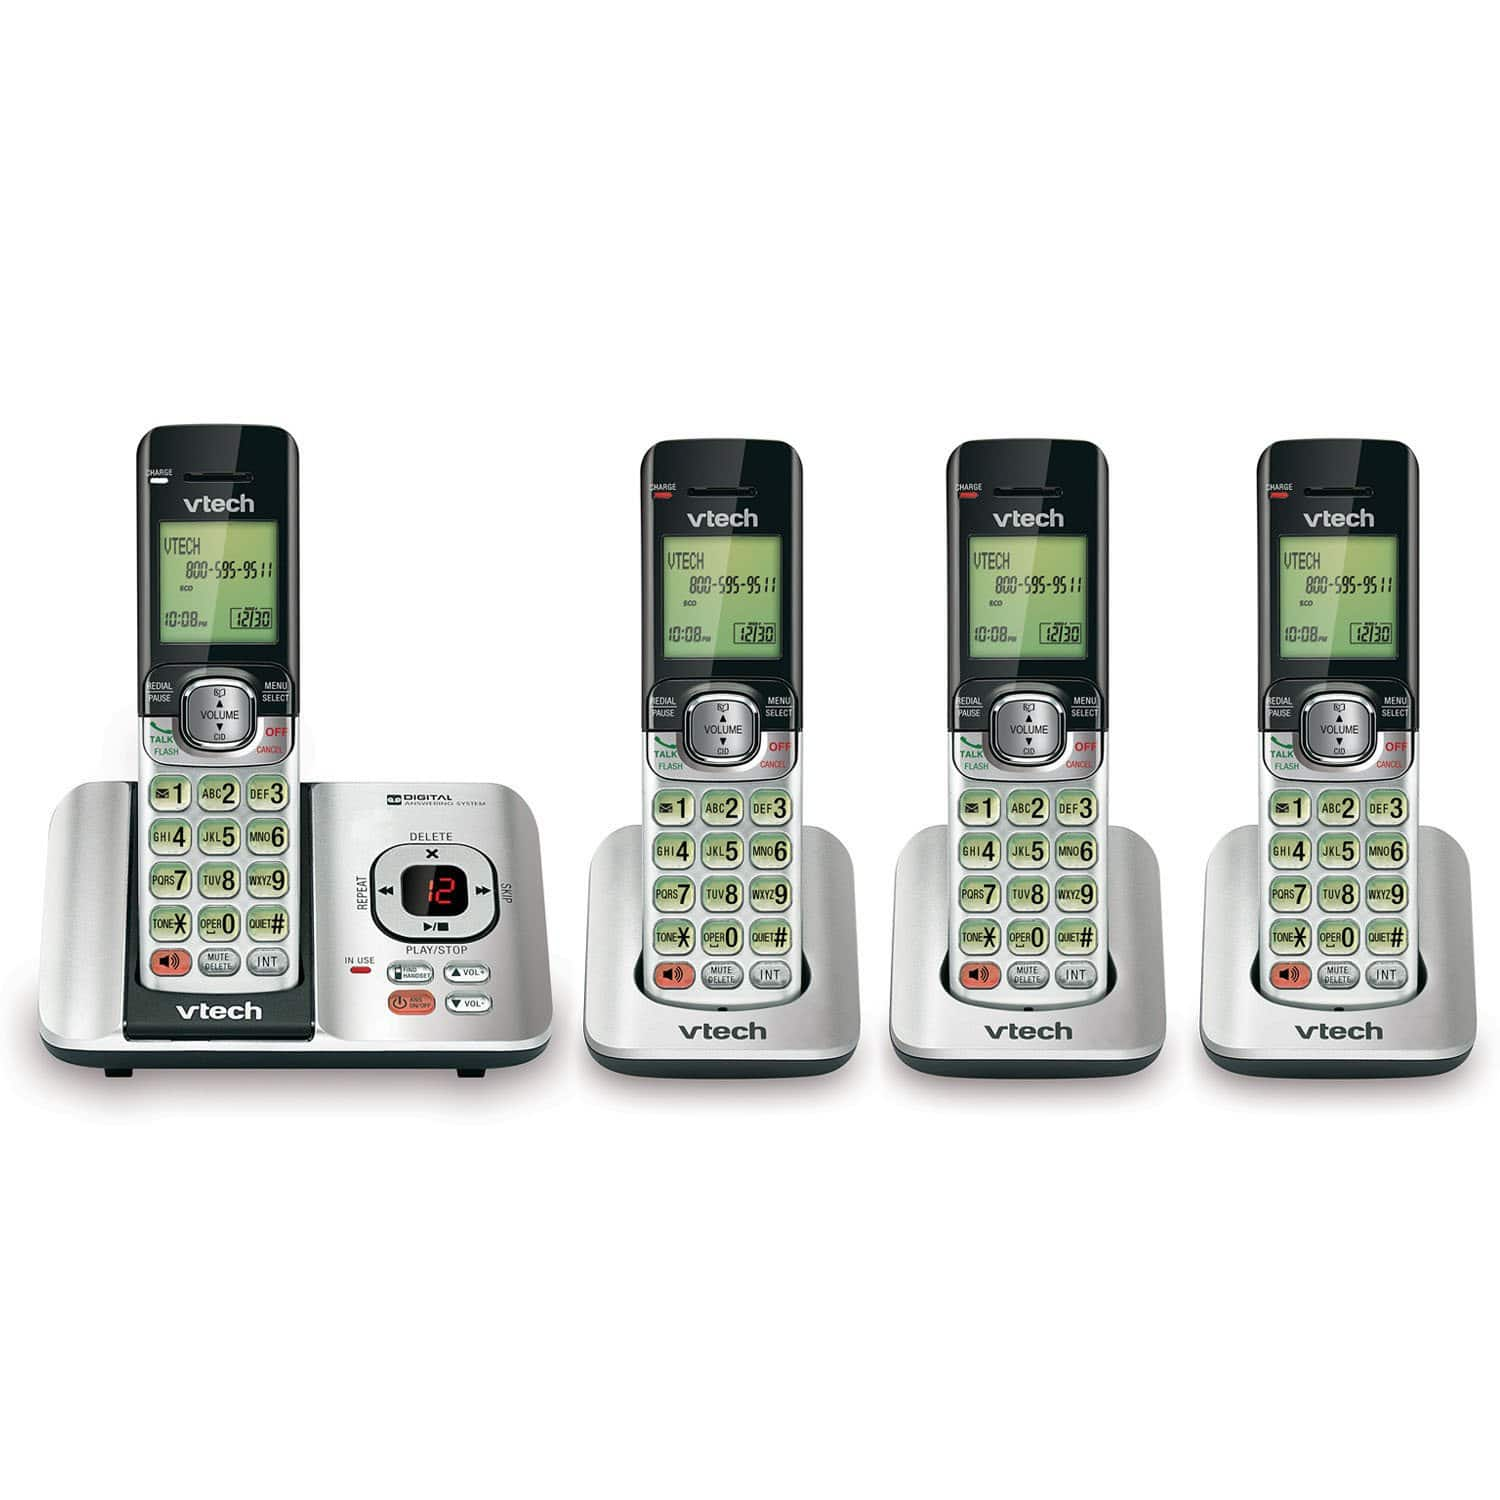 VTech CS6529-4 DECT 6.0 Phone Answering System with Caller ID/Call Waiting, 4 Cordless Handsets, Silver/Black, $49.78, Amazon